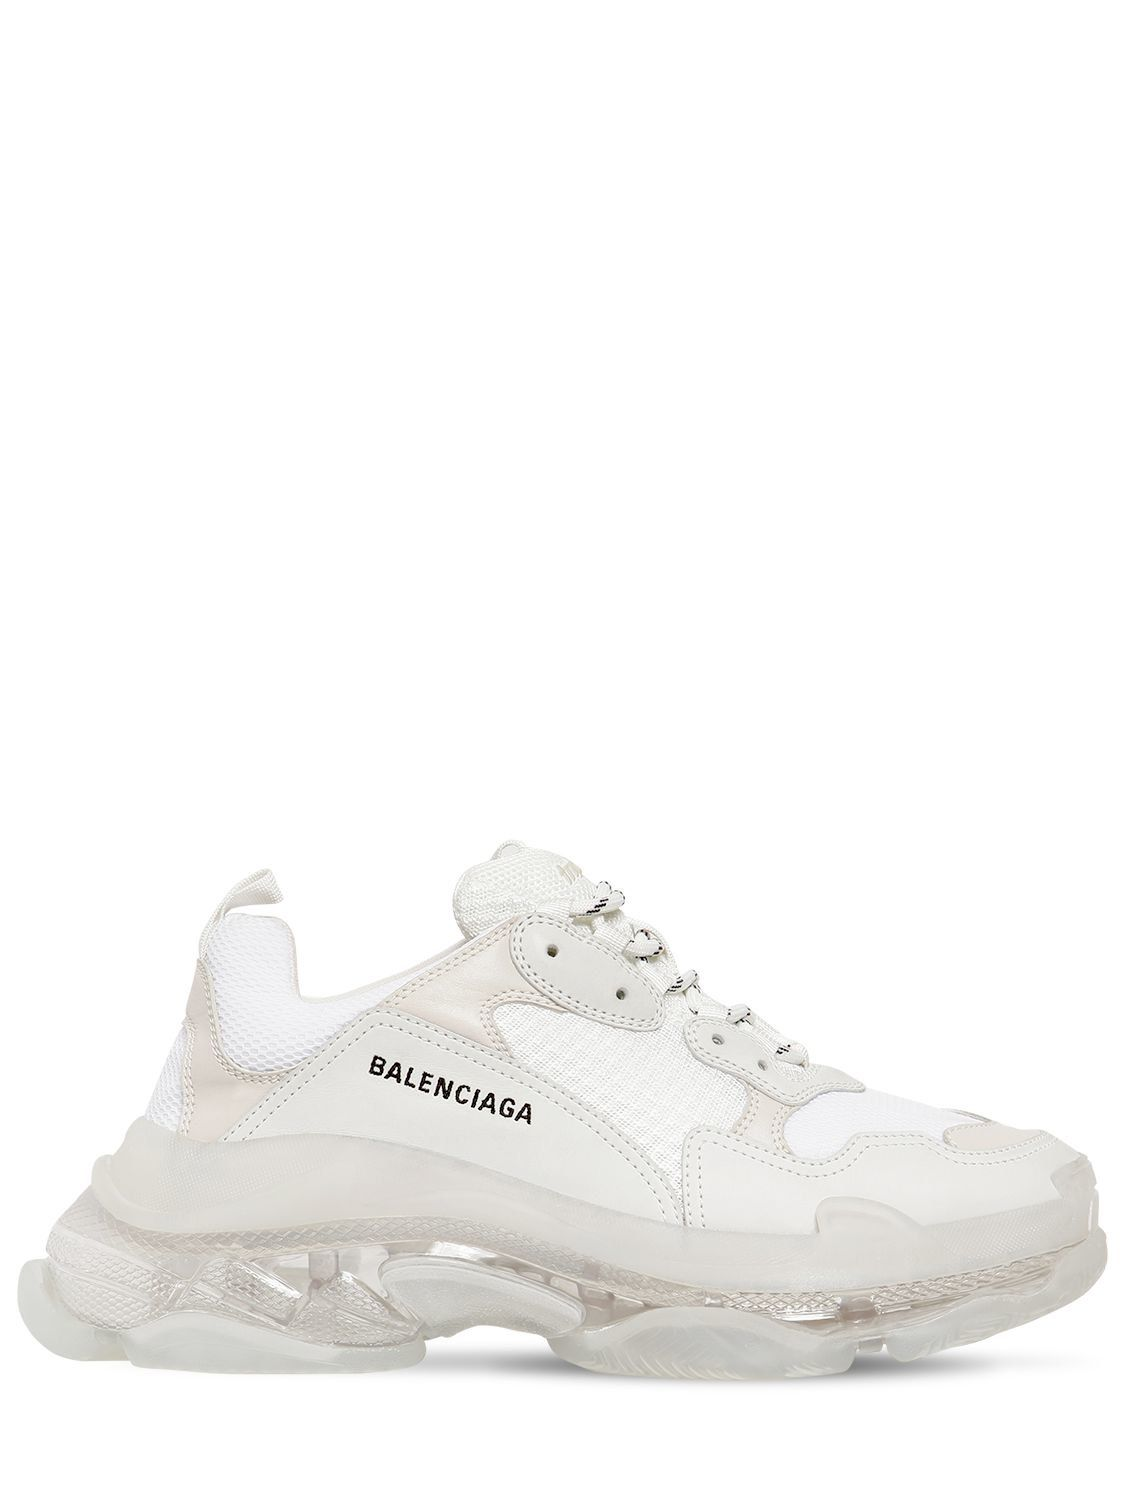 cfc3bbc9423 BALENCIAGA TRIPLE S BUBBLE SOLE SNEAKERS. #balenciaga #shoes White  Balenciaga Sneakers, Balenciaga